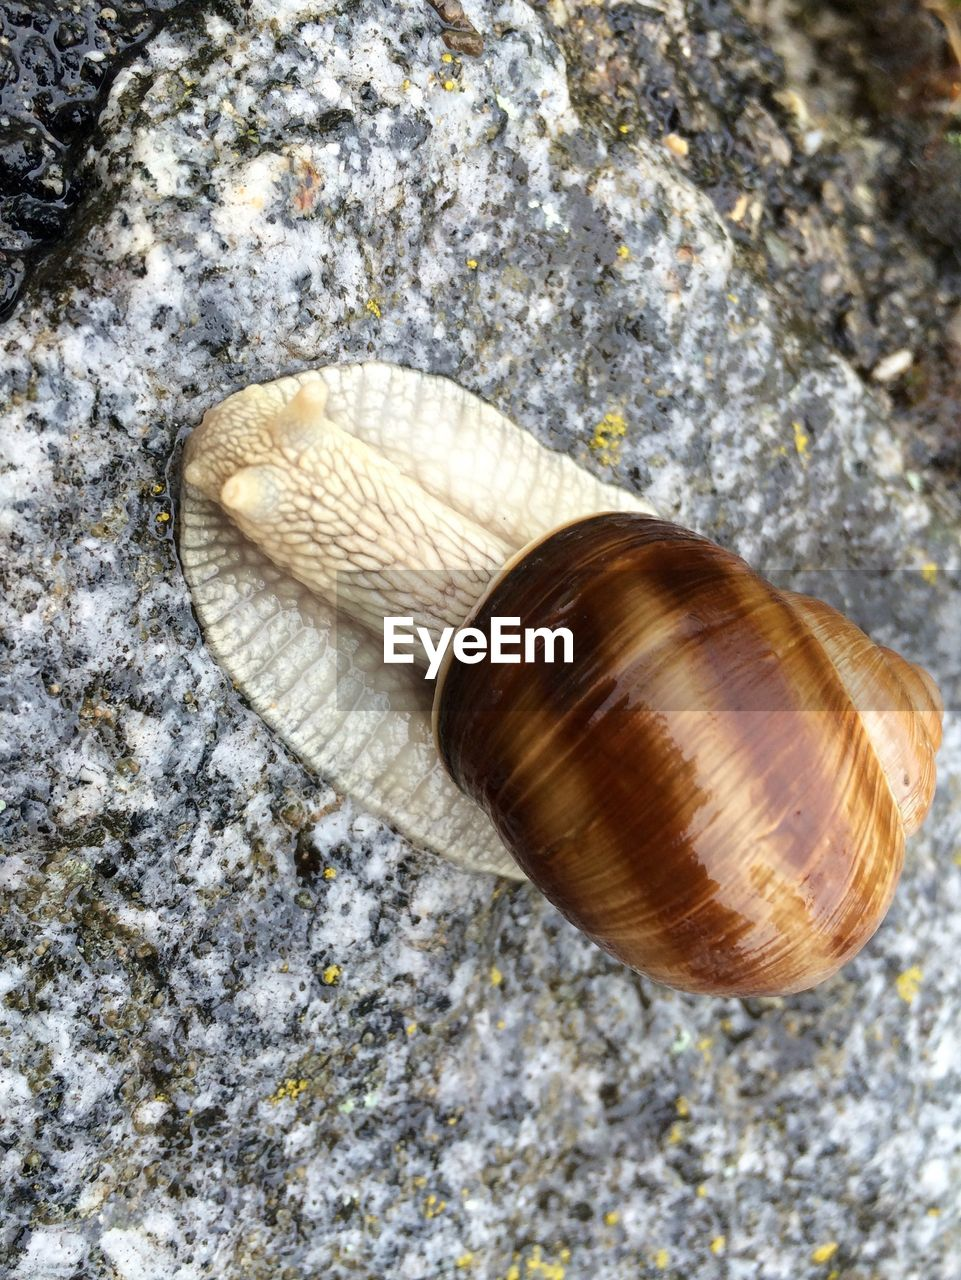 snail, one animal, animal shell, animal themes, gastropod, nature, animals in the wild, wildlife, rock - object, outdoors, day, close-up, no people, animal wildlife, textured, fragility, sea life, beauty in nature